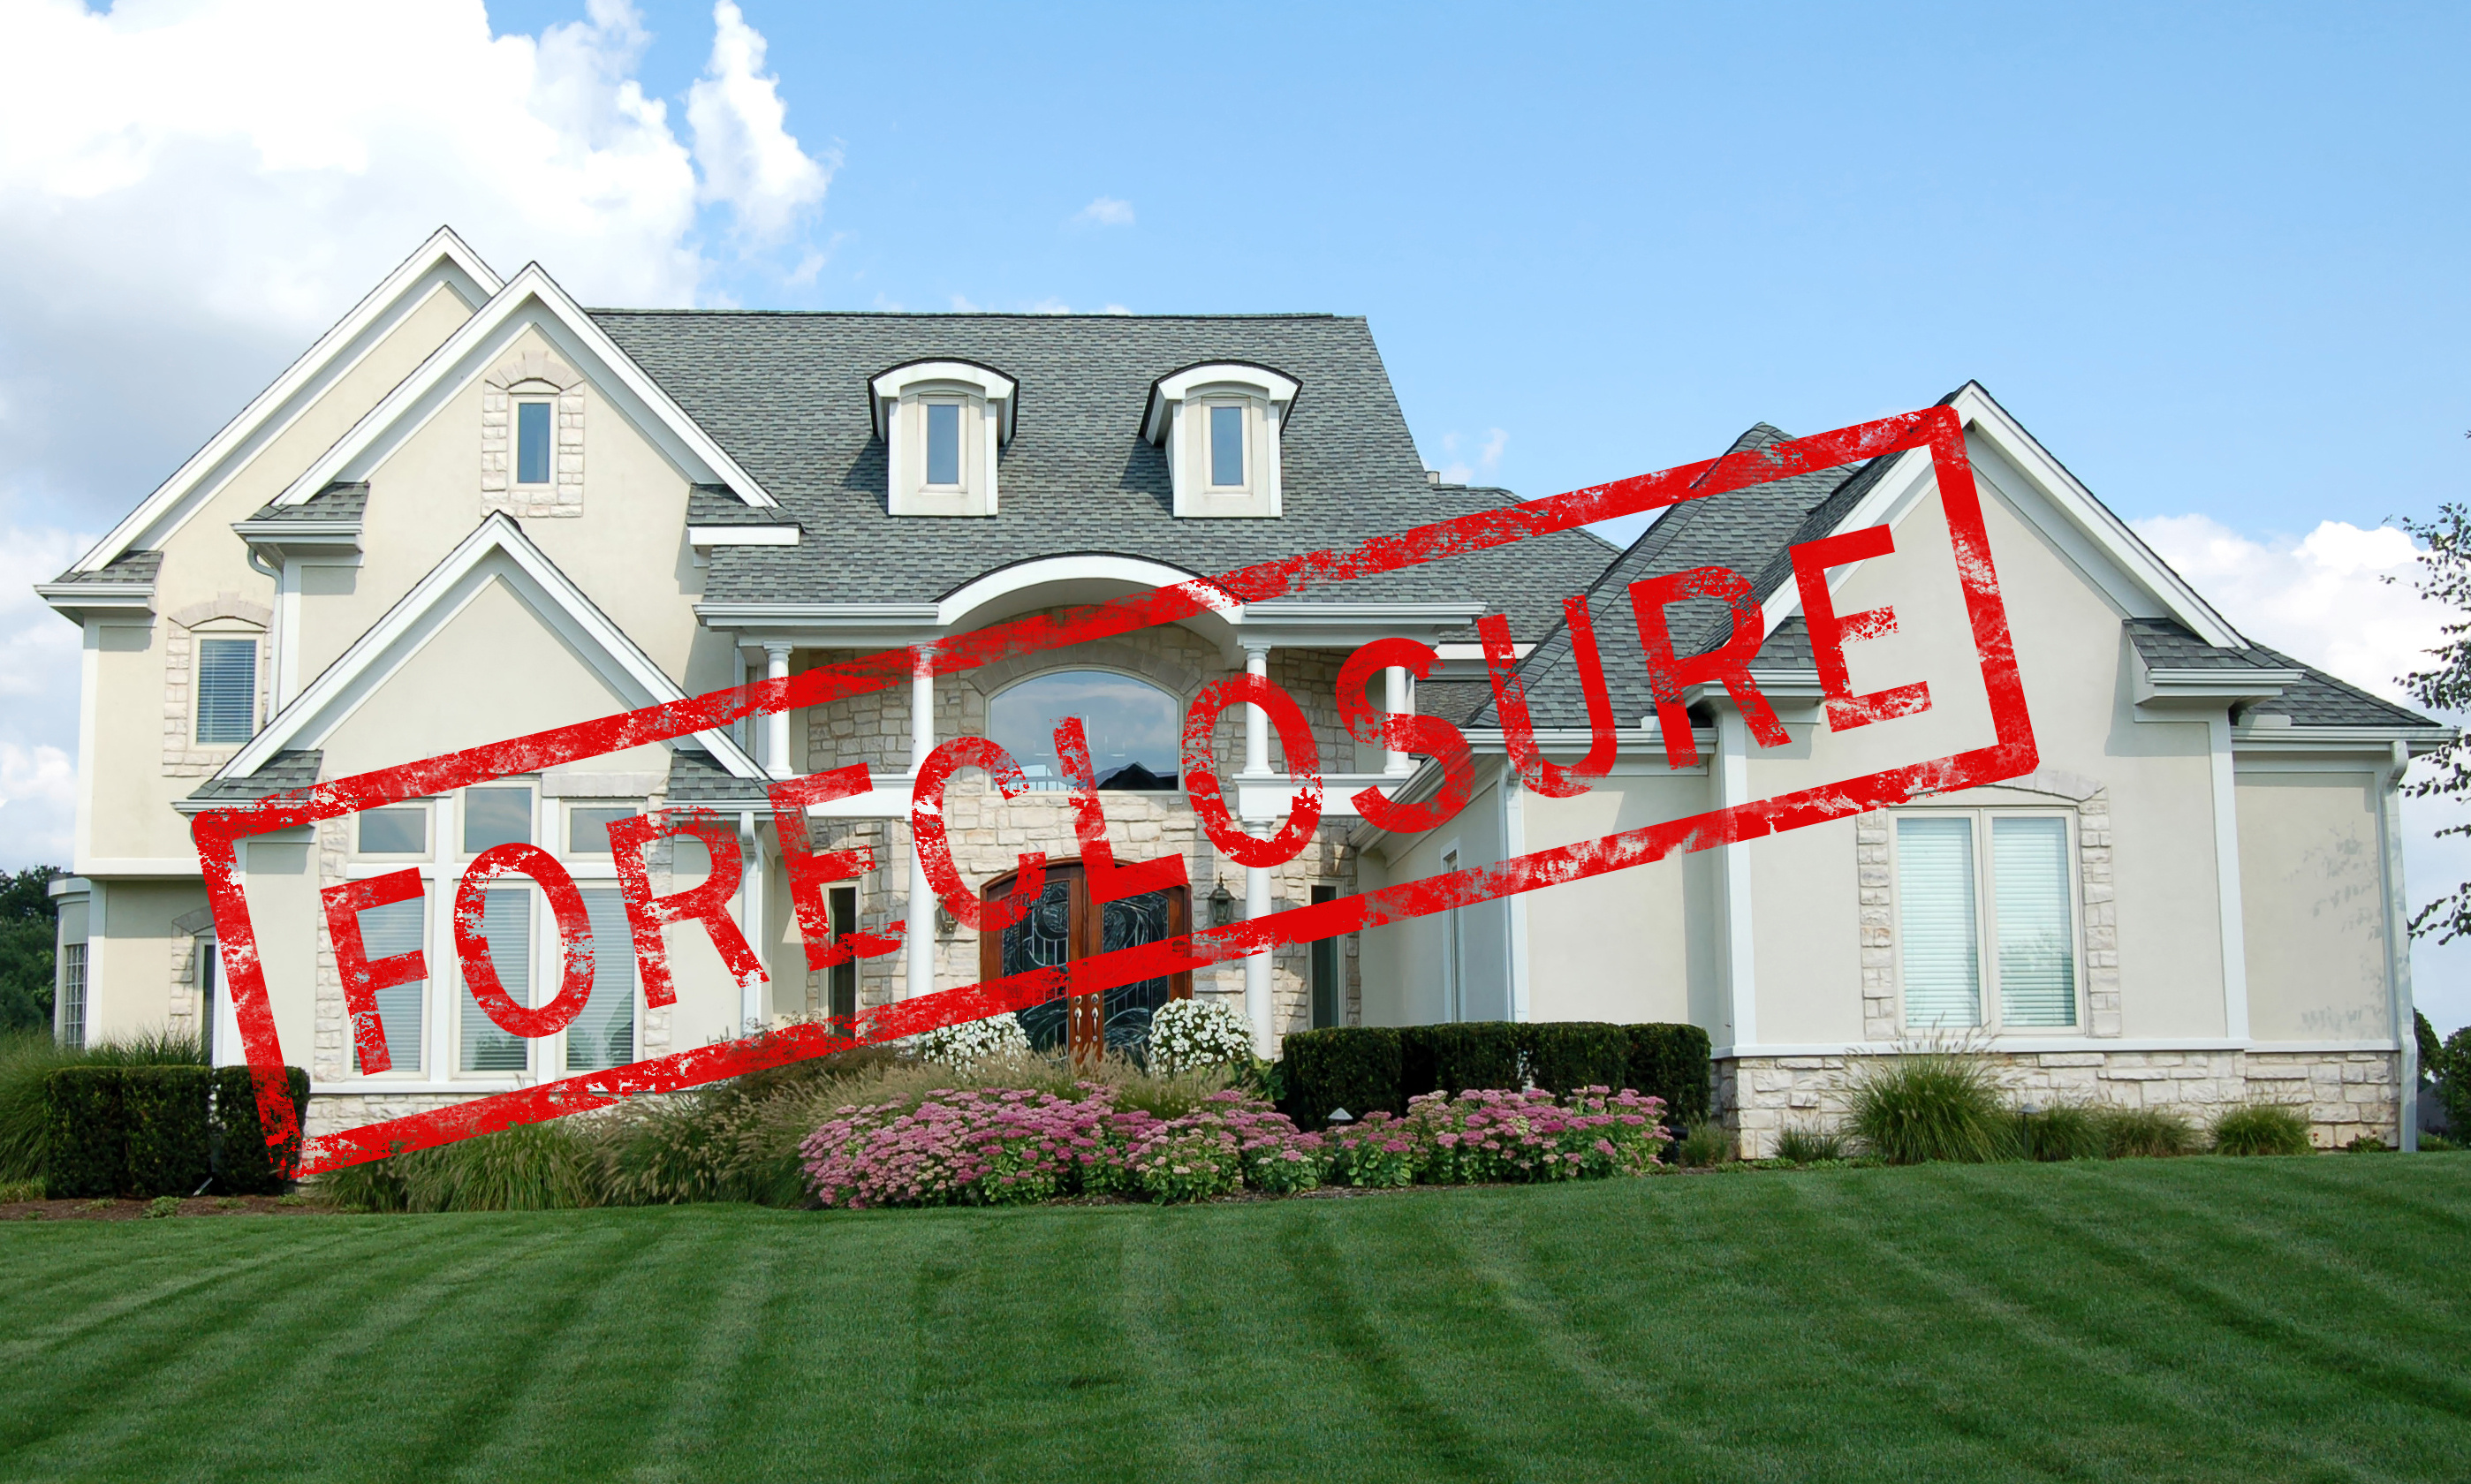 Call Real Estate Appraisal And Research to discuss appraisals regarding Lee foreclosures